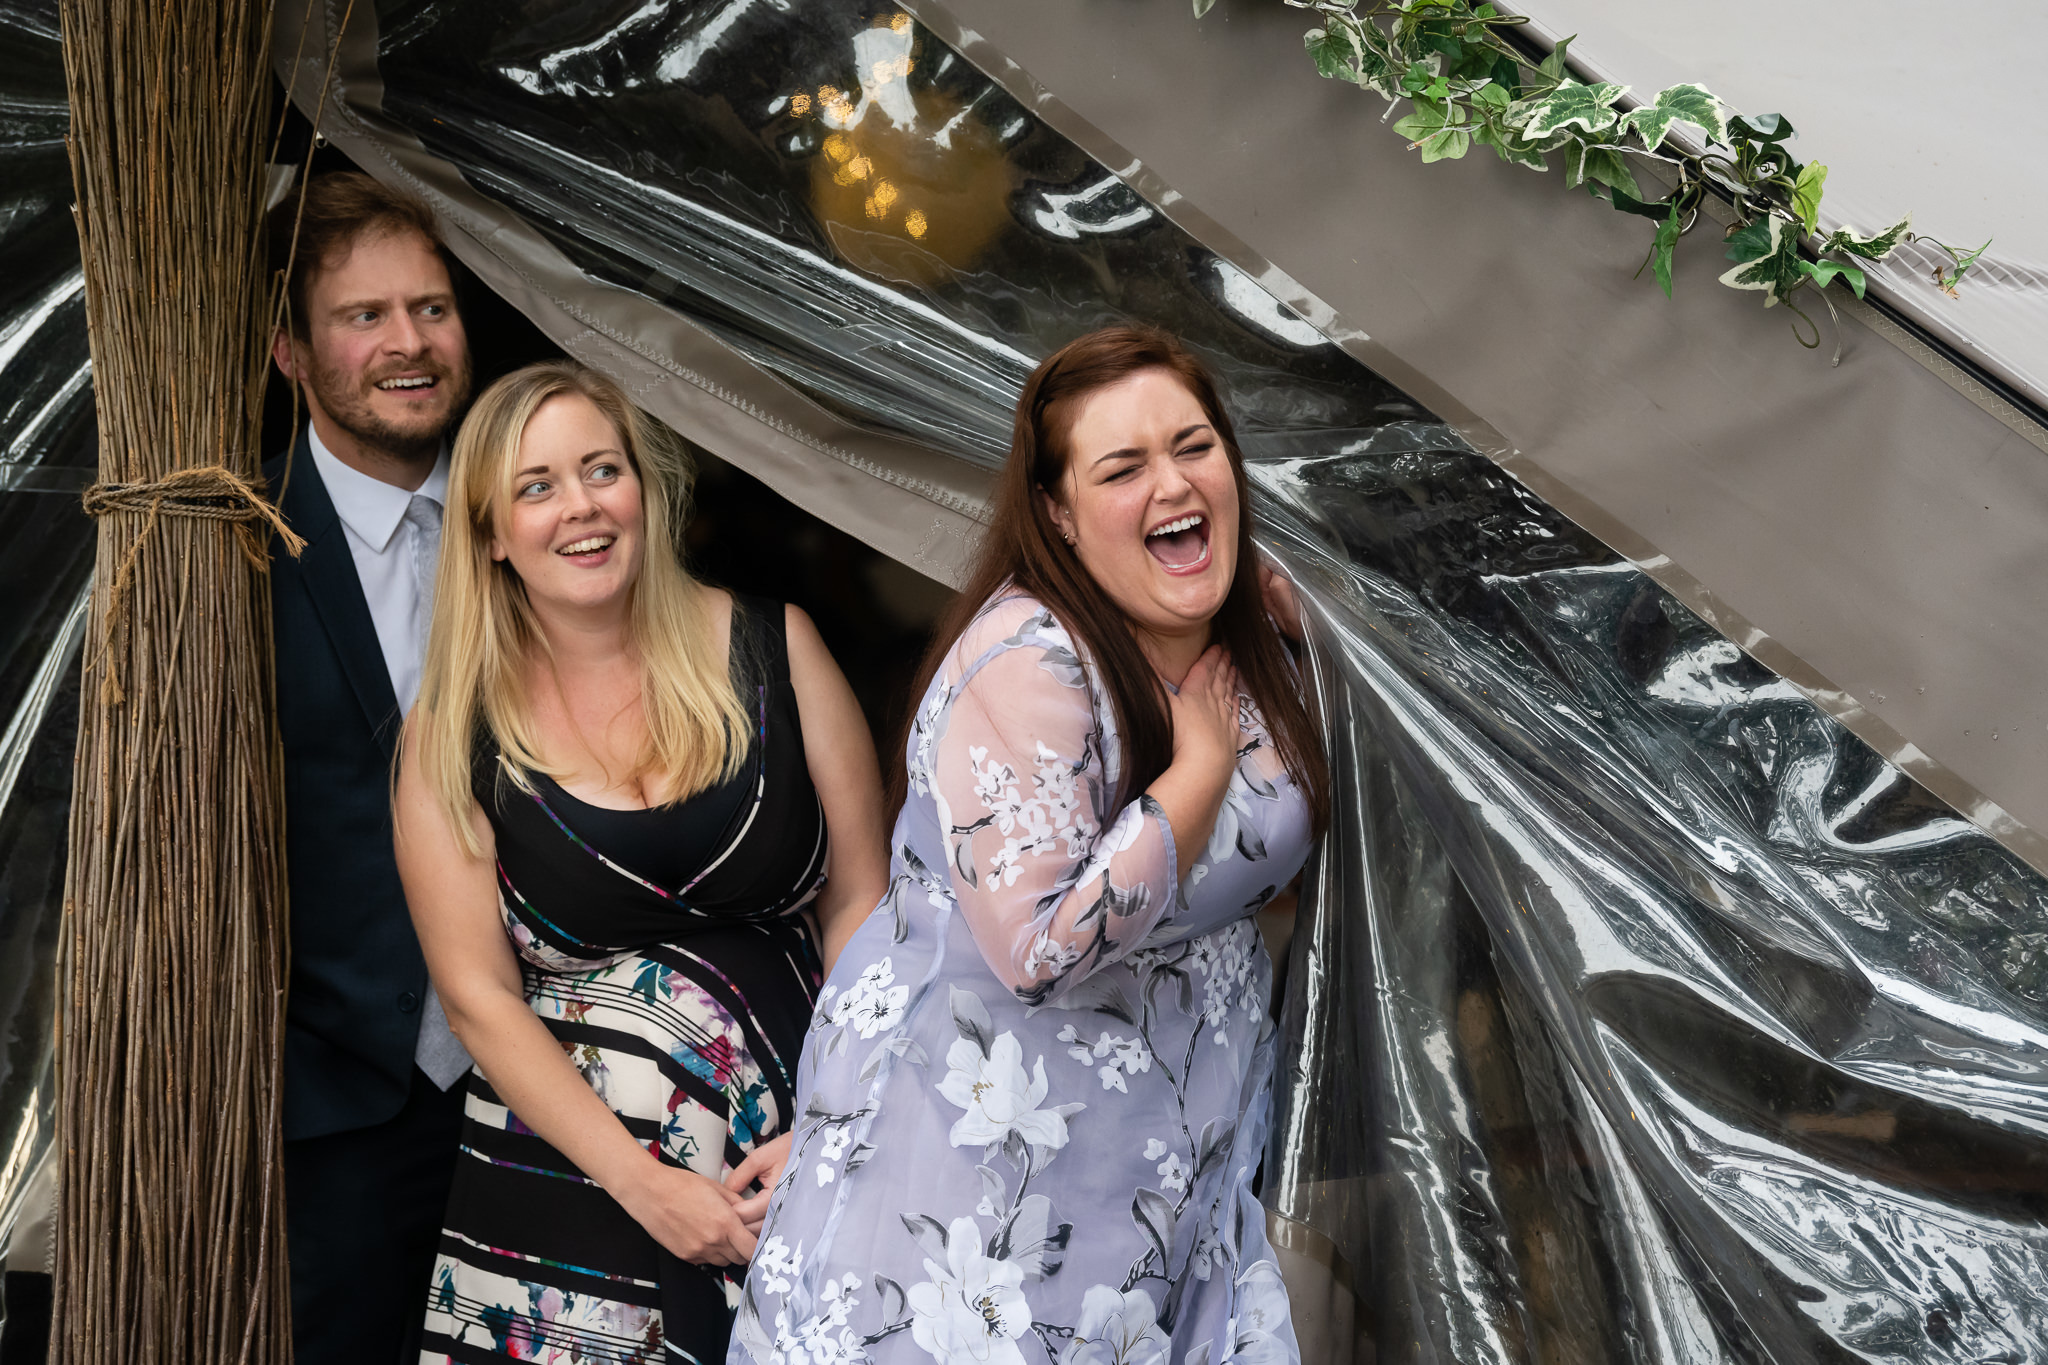 Guests laughing as they exit the stretched tent